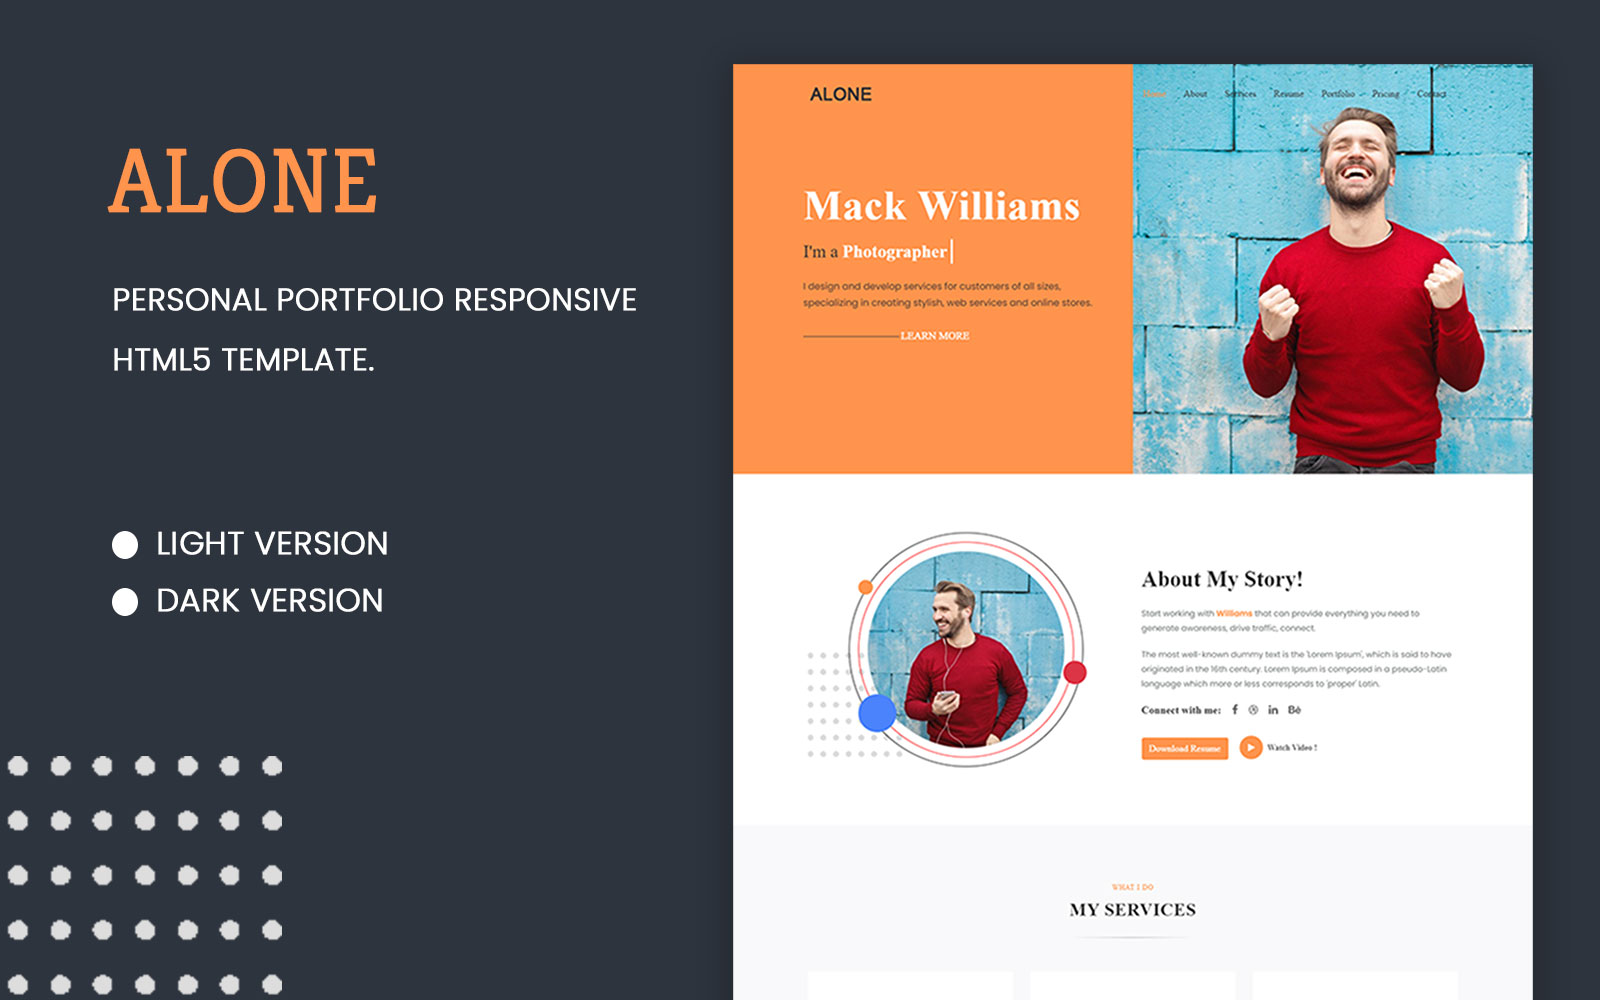 Alone - Personal Portfolio Responsive Landing Page Template